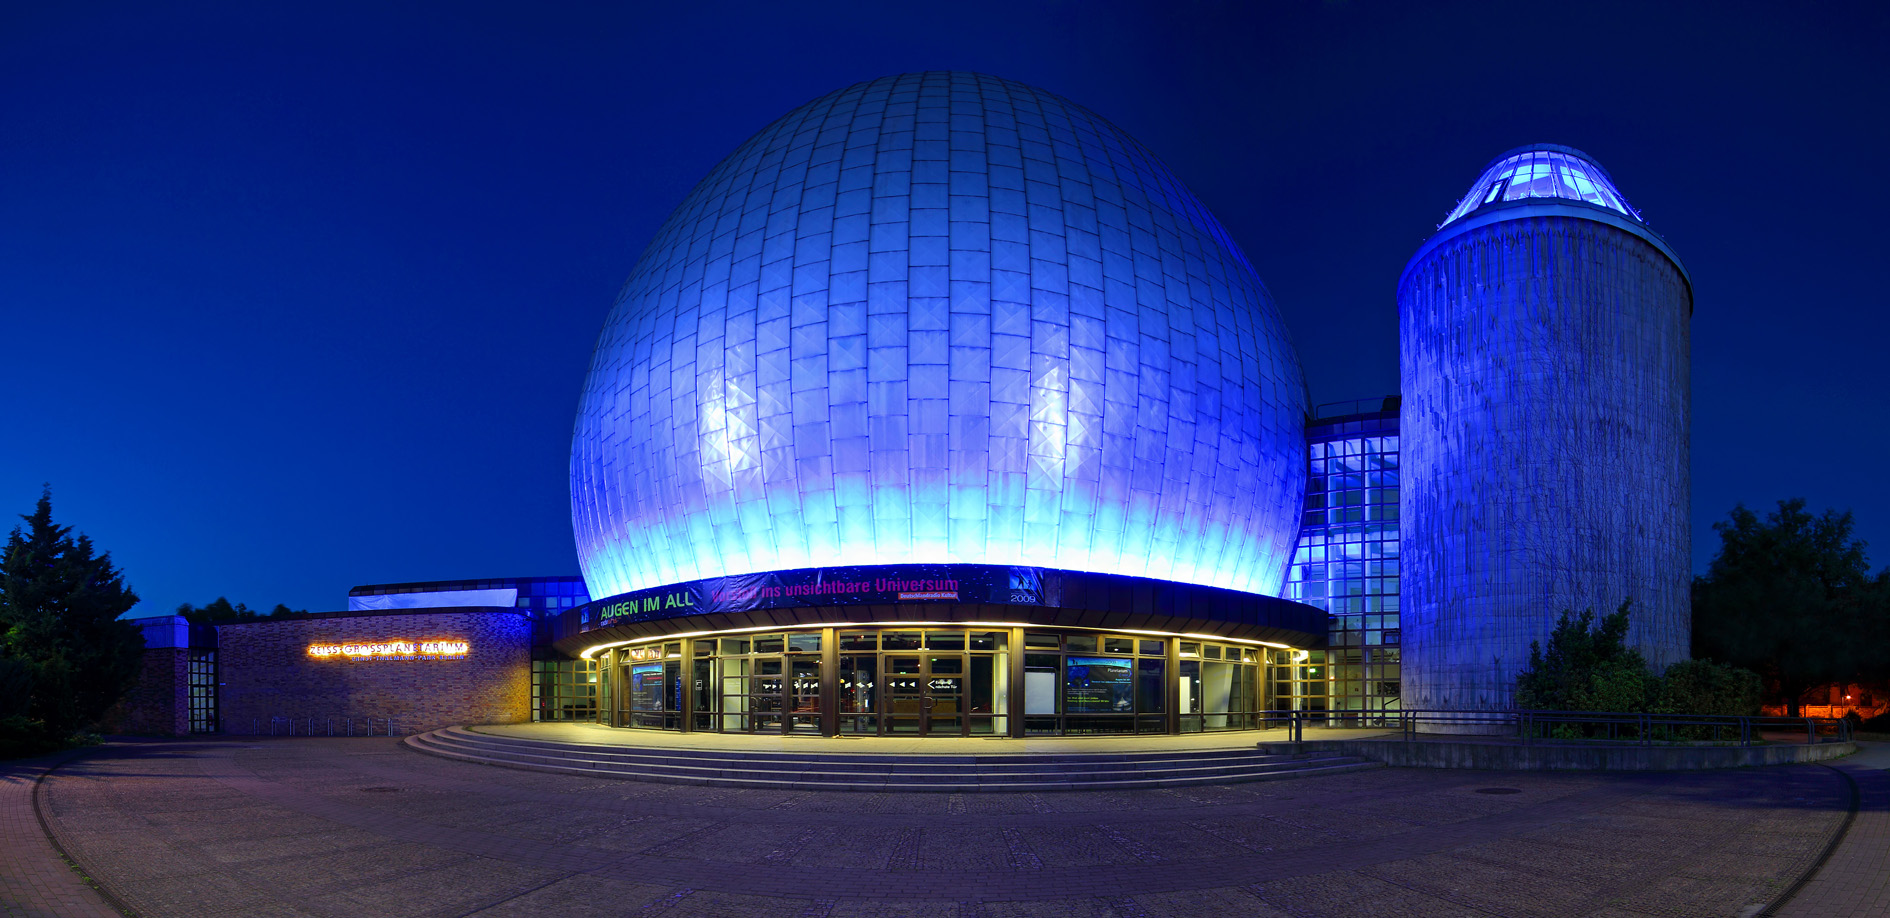 Zeiss-Großplanetarium